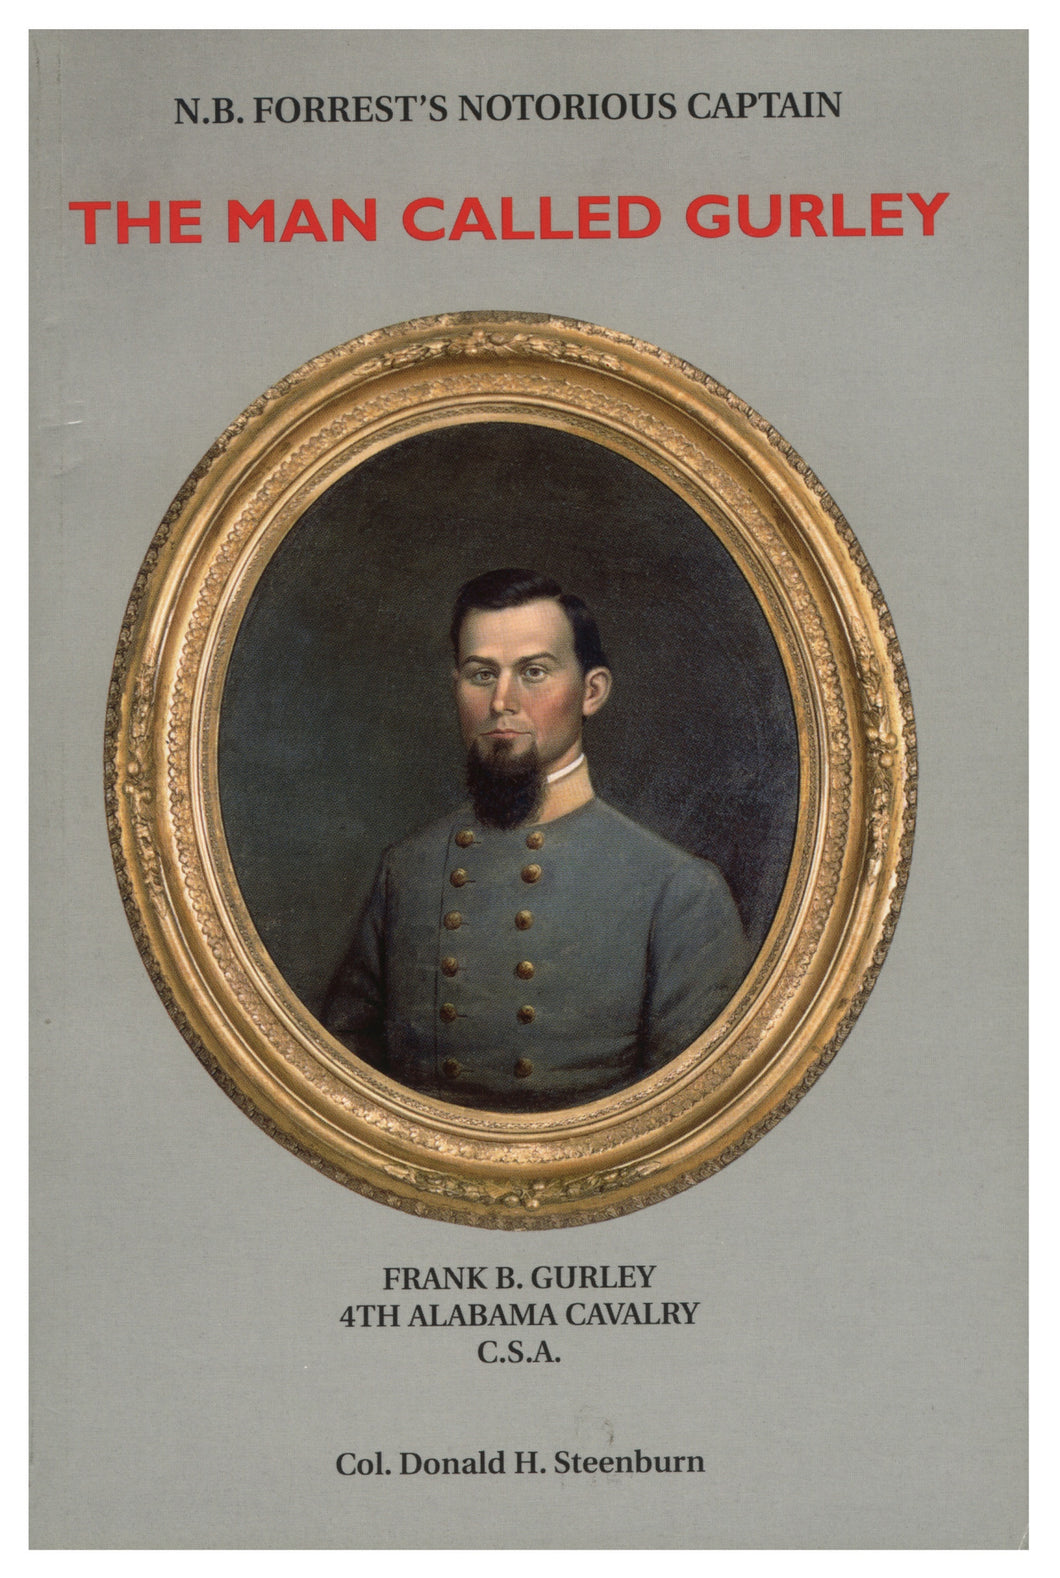 Books, The Man Called Gurley: N. B. Forrest's Notorious Captain